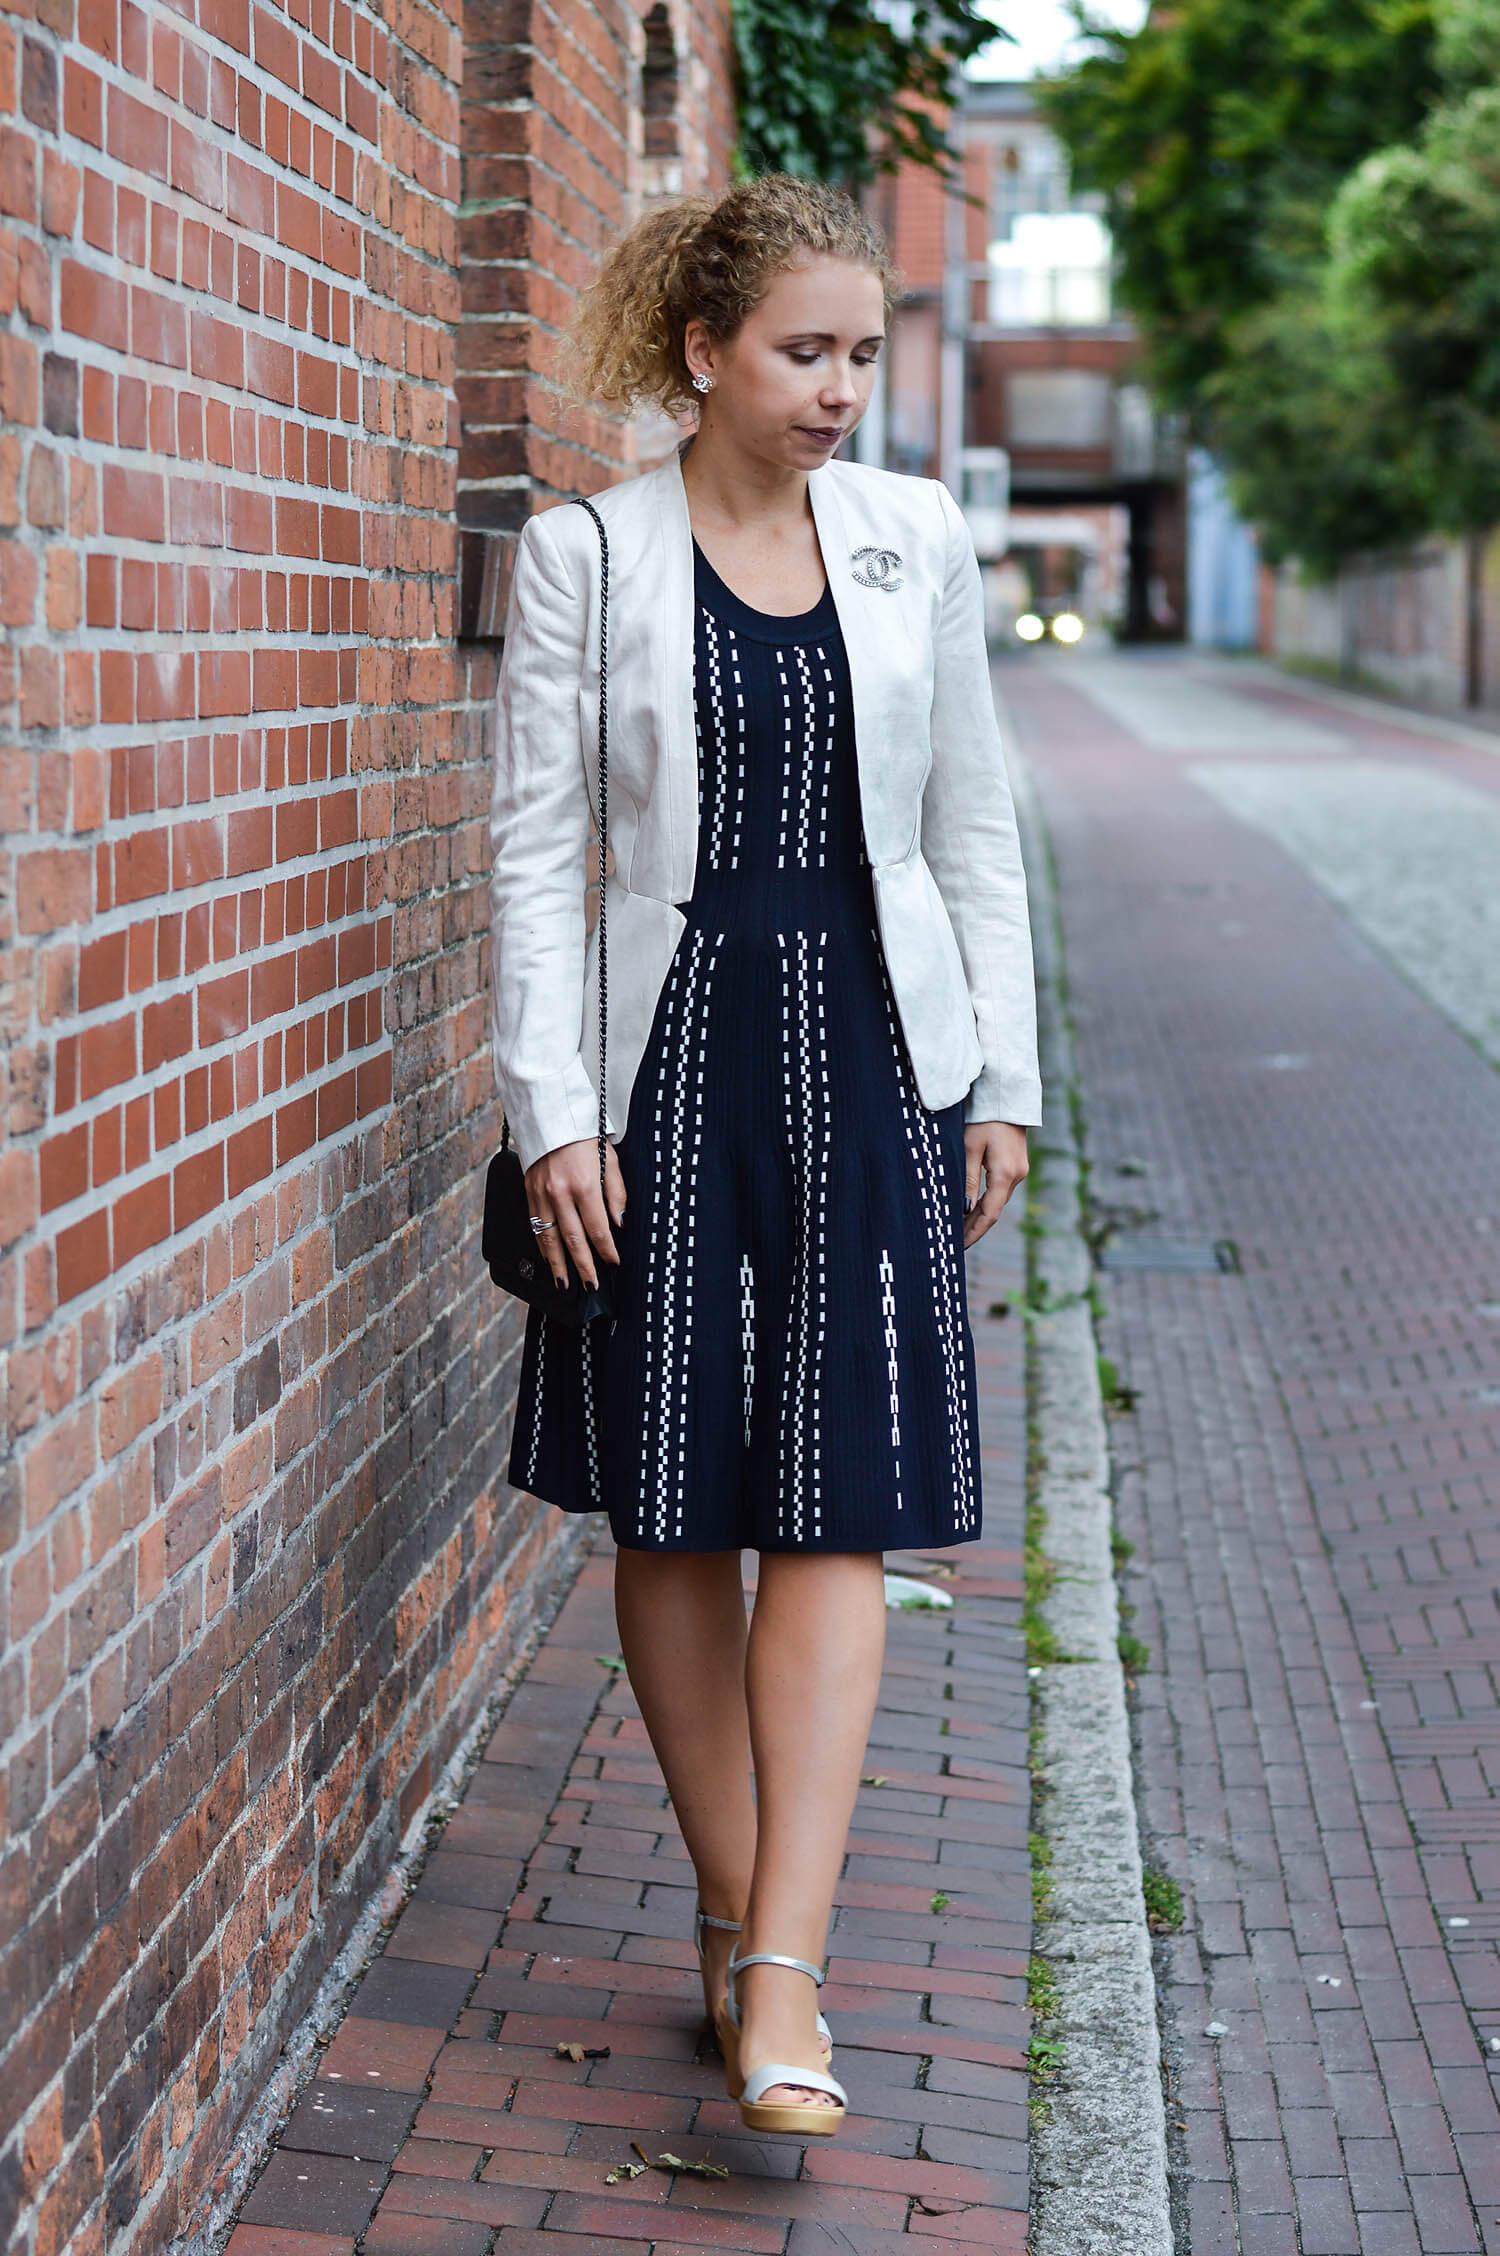 kationette-fashionblog-nrw-Outfit-Feminine-Knit-Dress-Blazer-Chanel-Wedges-ootd